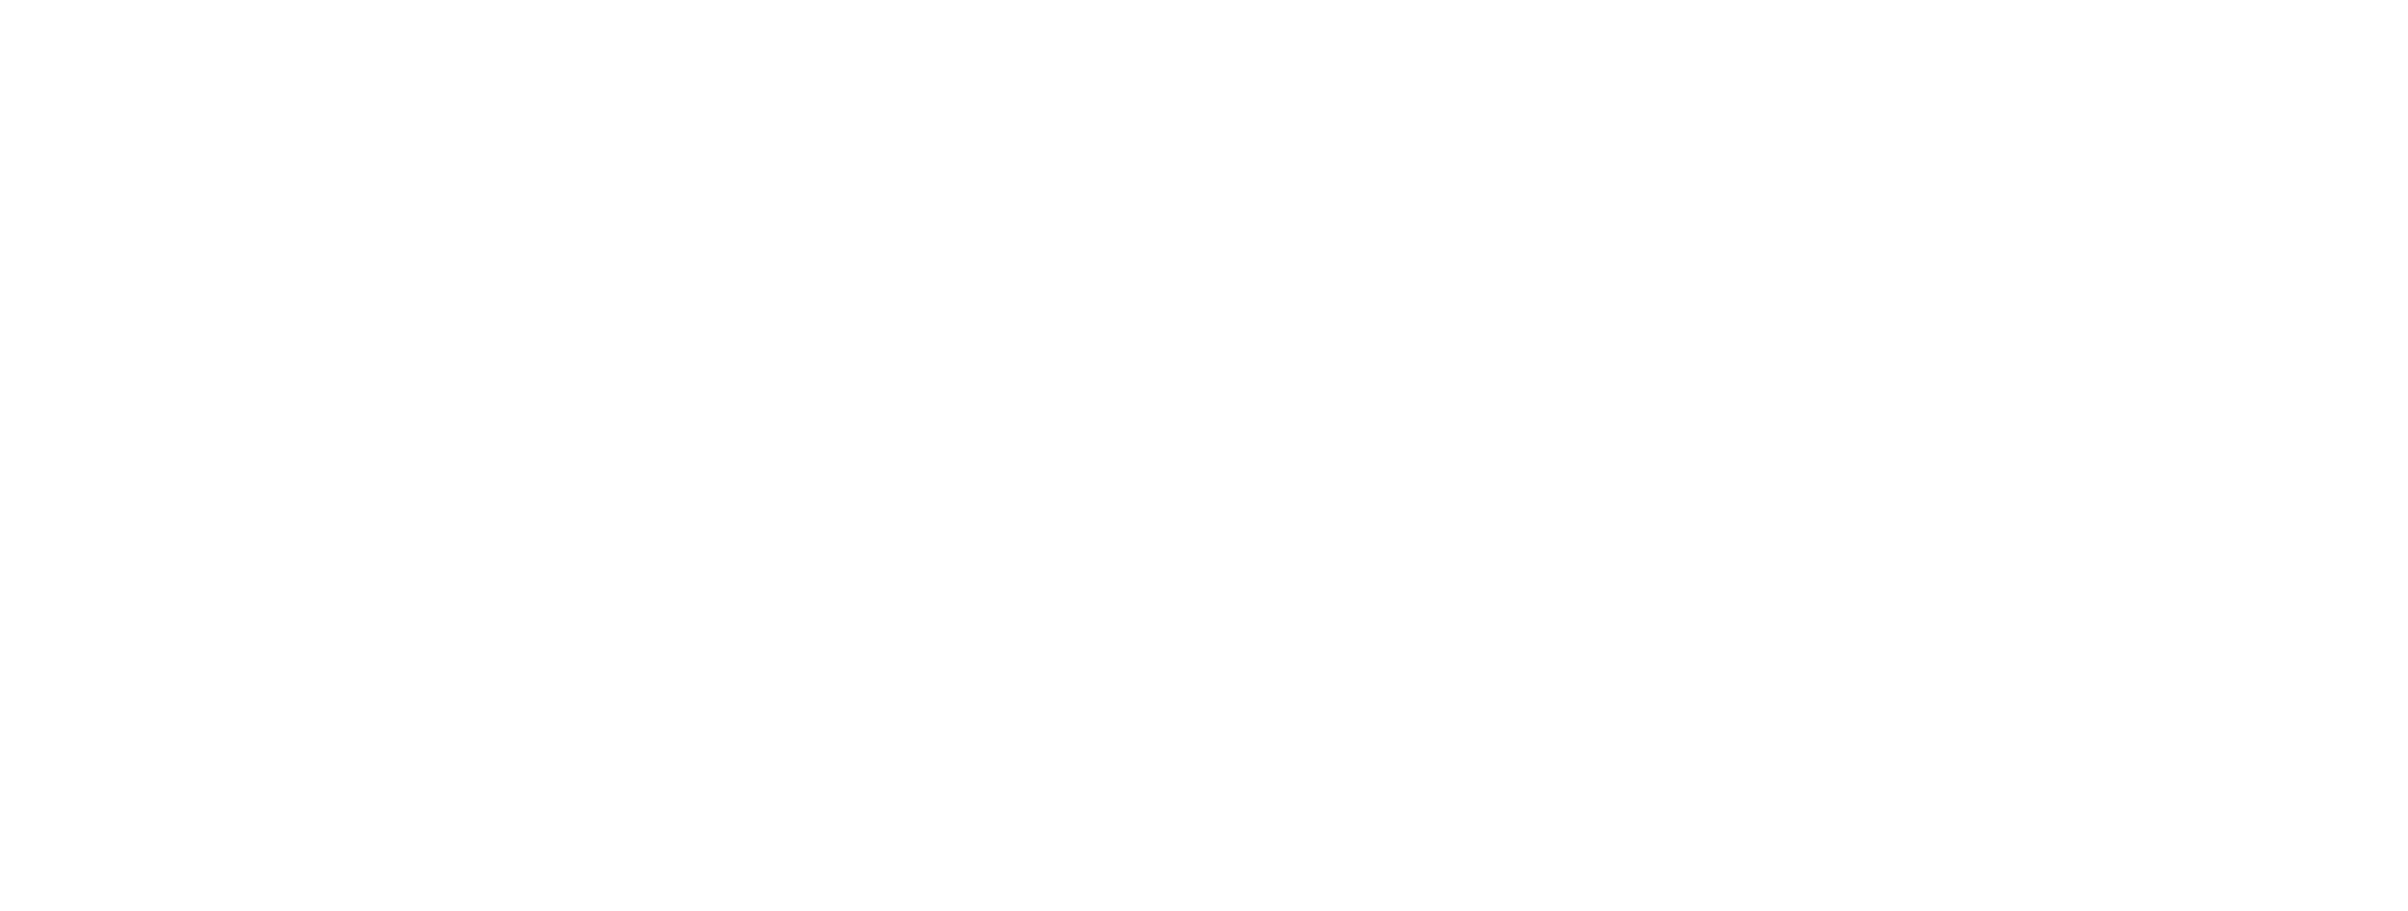 http://www.doyleforpa.com/wp-content/uploads/2020/01/Doyle_White.png